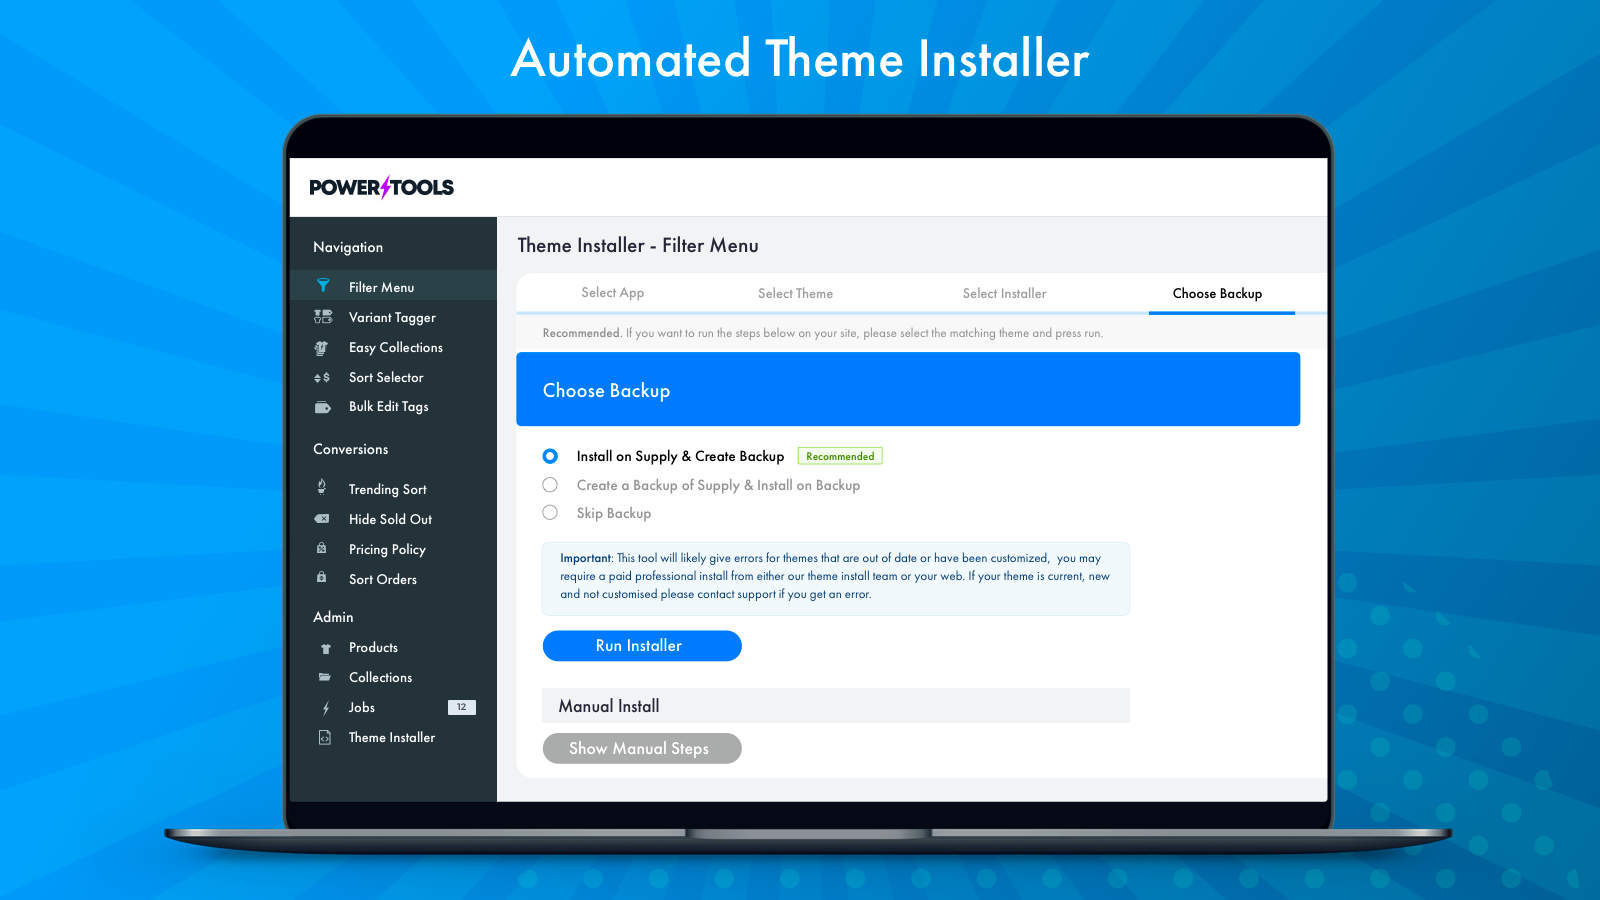 Automated Theme Installer